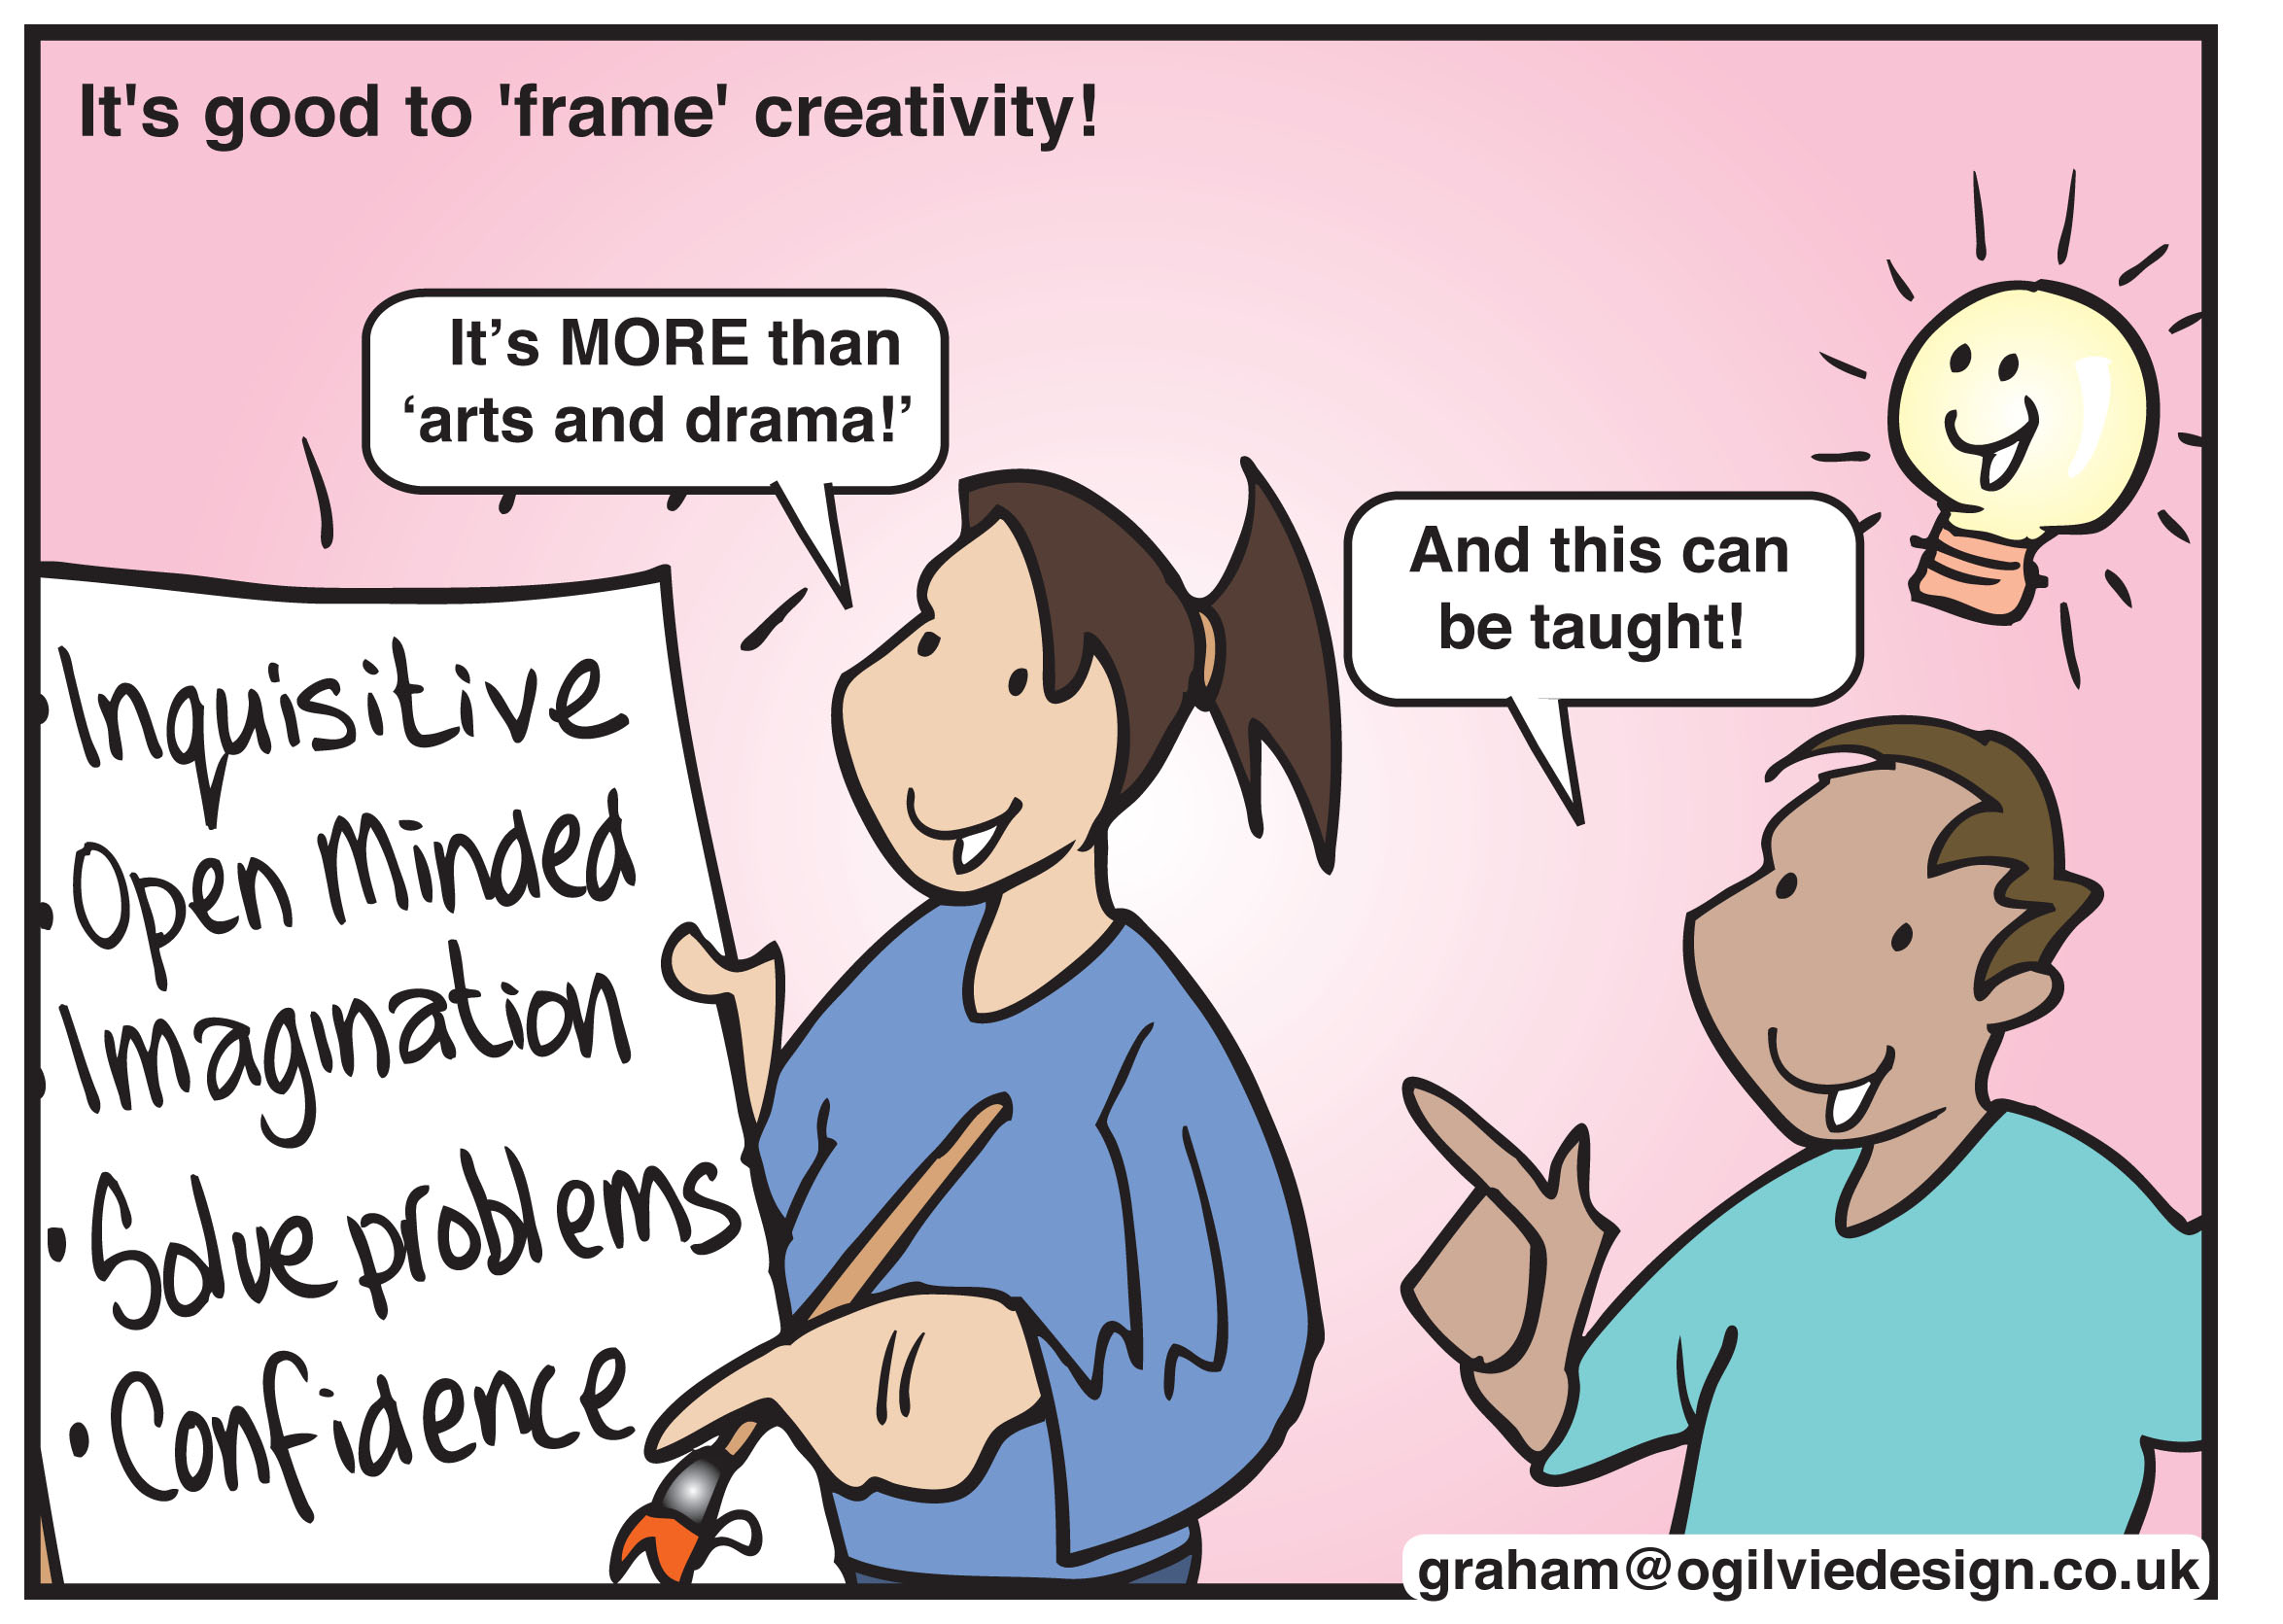 Creativity can be taught